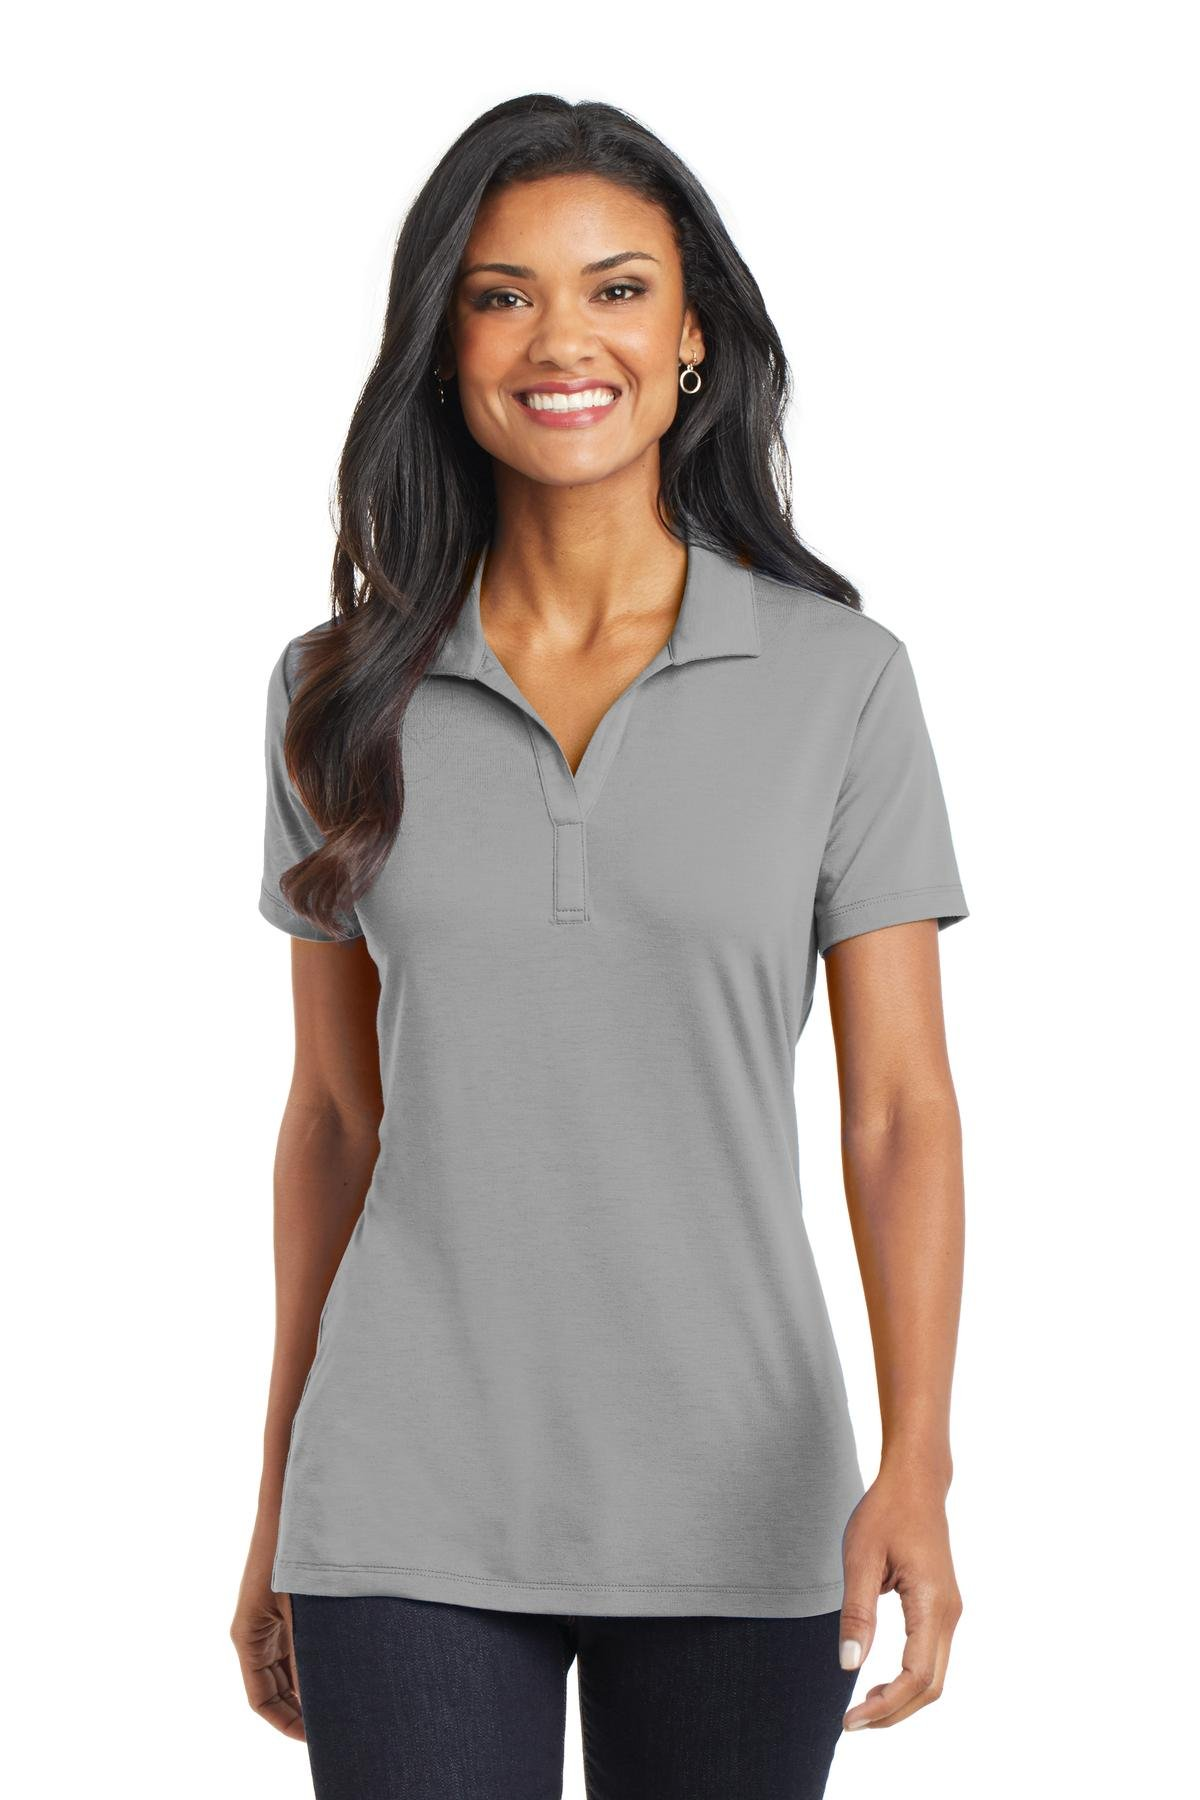 Port Authority L568 Women's Cotton Touch Performance Polo Frost Grey Small